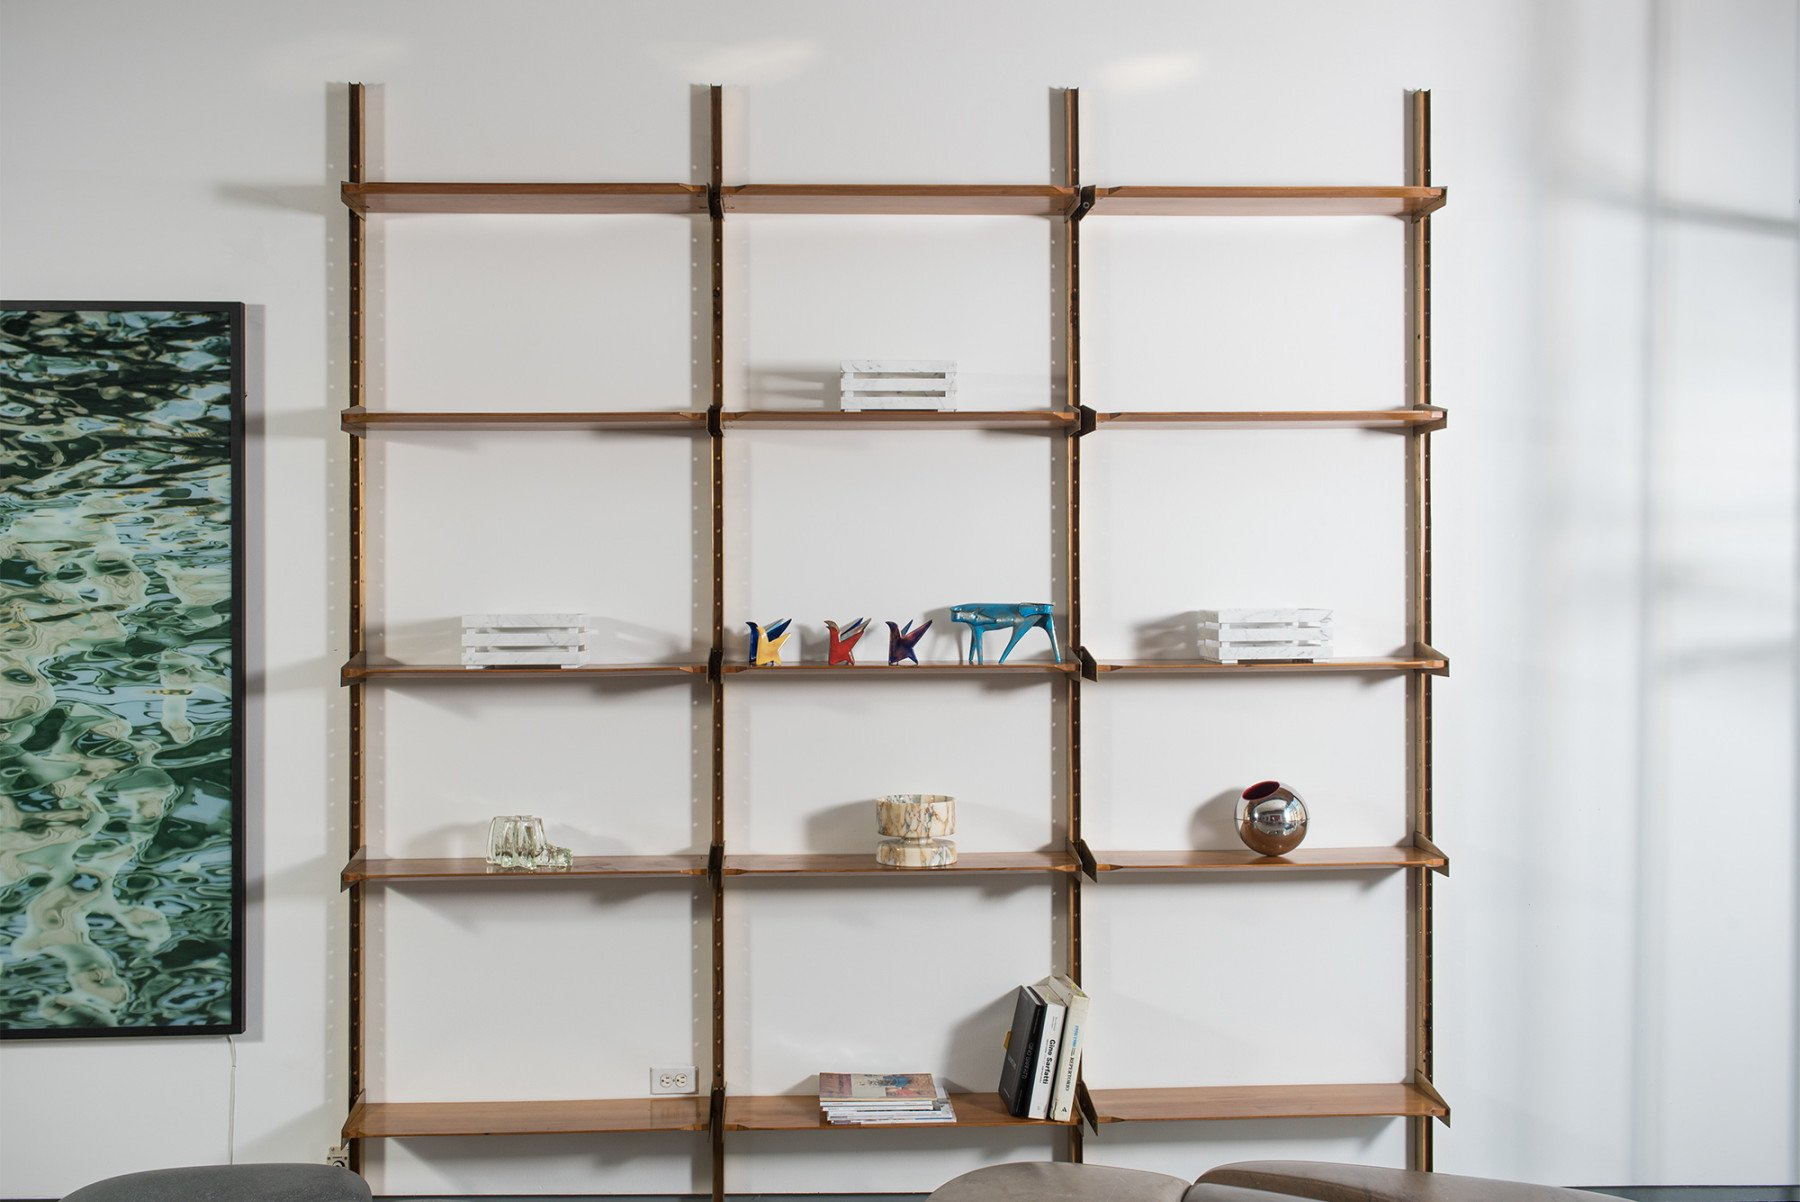 Pierluigi Spadolini |                              Modular Shelving System/bookcase - Attributed to Pierluigi Spadolini